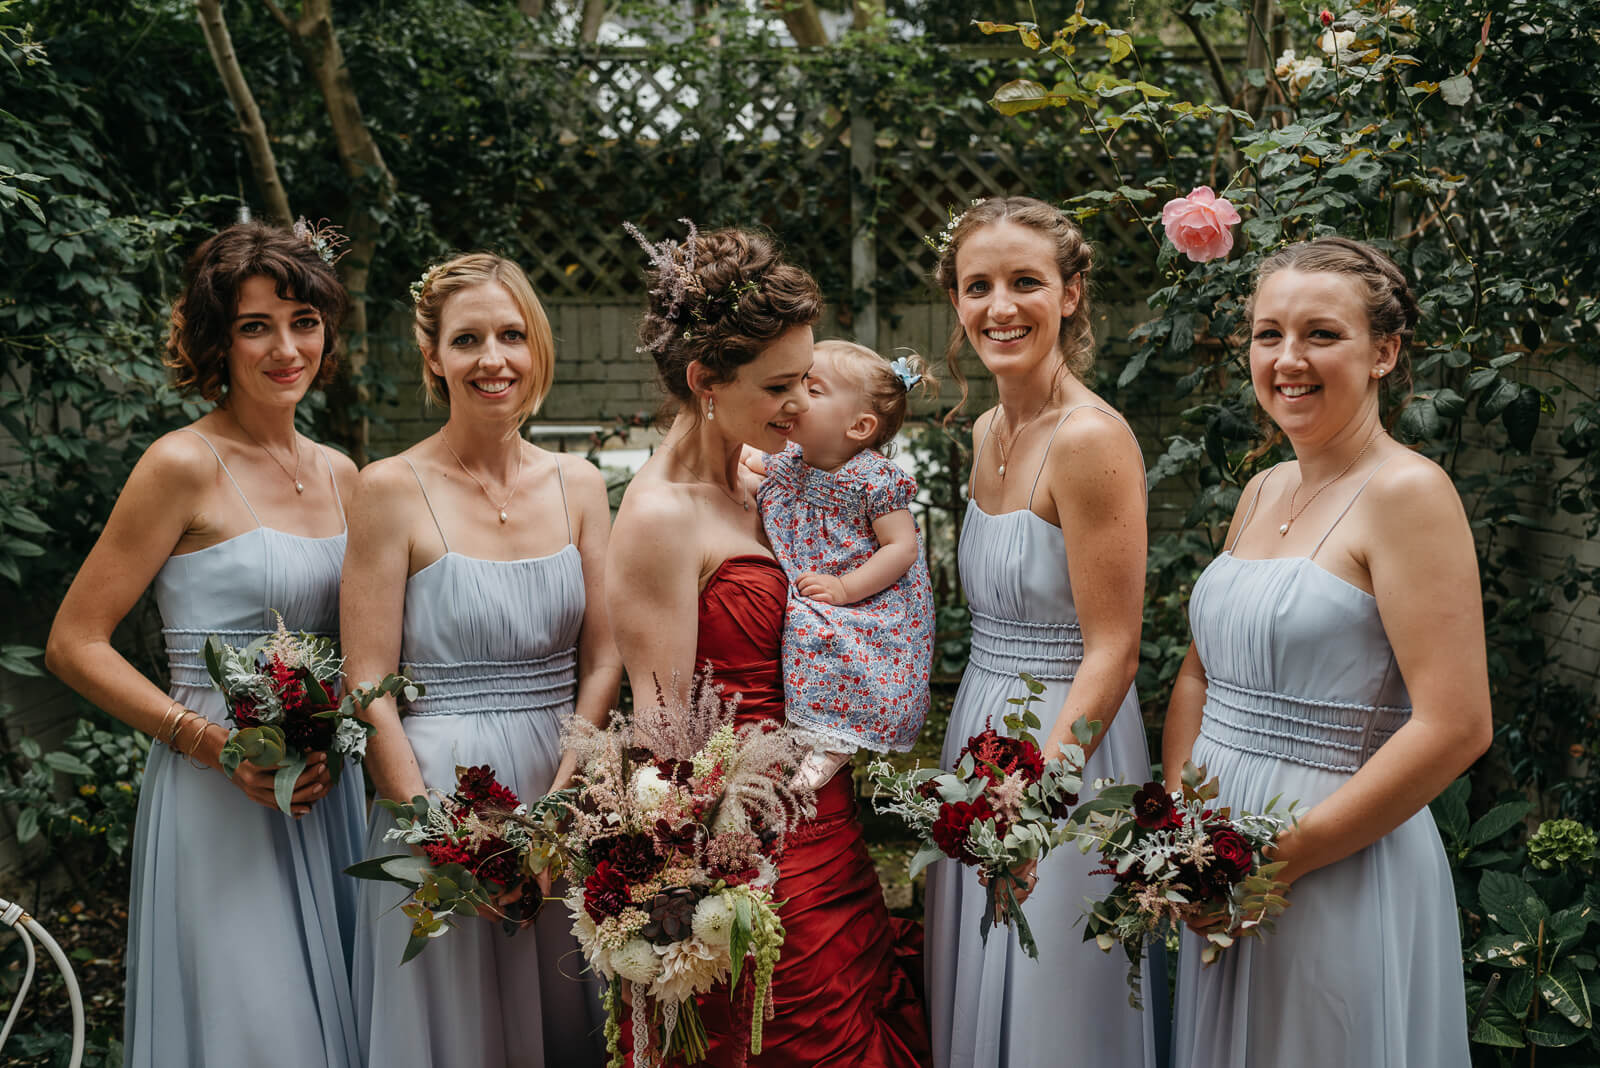 bride and bridesmaids laugh in garden holding their bouquets